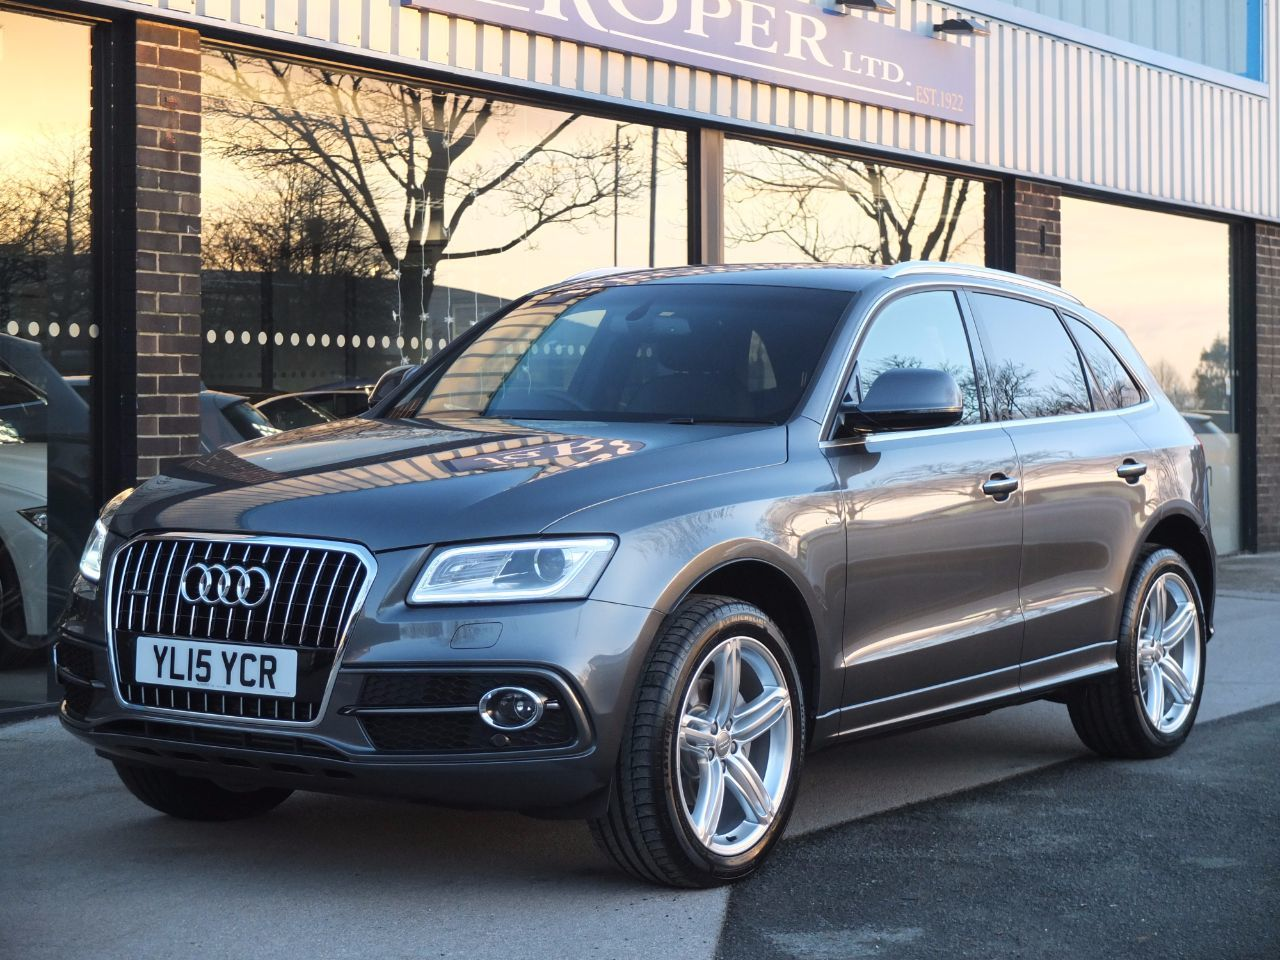 Audi Q5 2.0 TDI quattro S Line Plus S Tronic 177ps (Tech Pack) Estate Diesel Daytona Grey MetallicAudi Q5 2.0 TDI quattro S Line Plus S Tronic 177ps (Tech Pack) Estate Diesel Daytona Grey Metallic at fa Roper Ltd Bradford